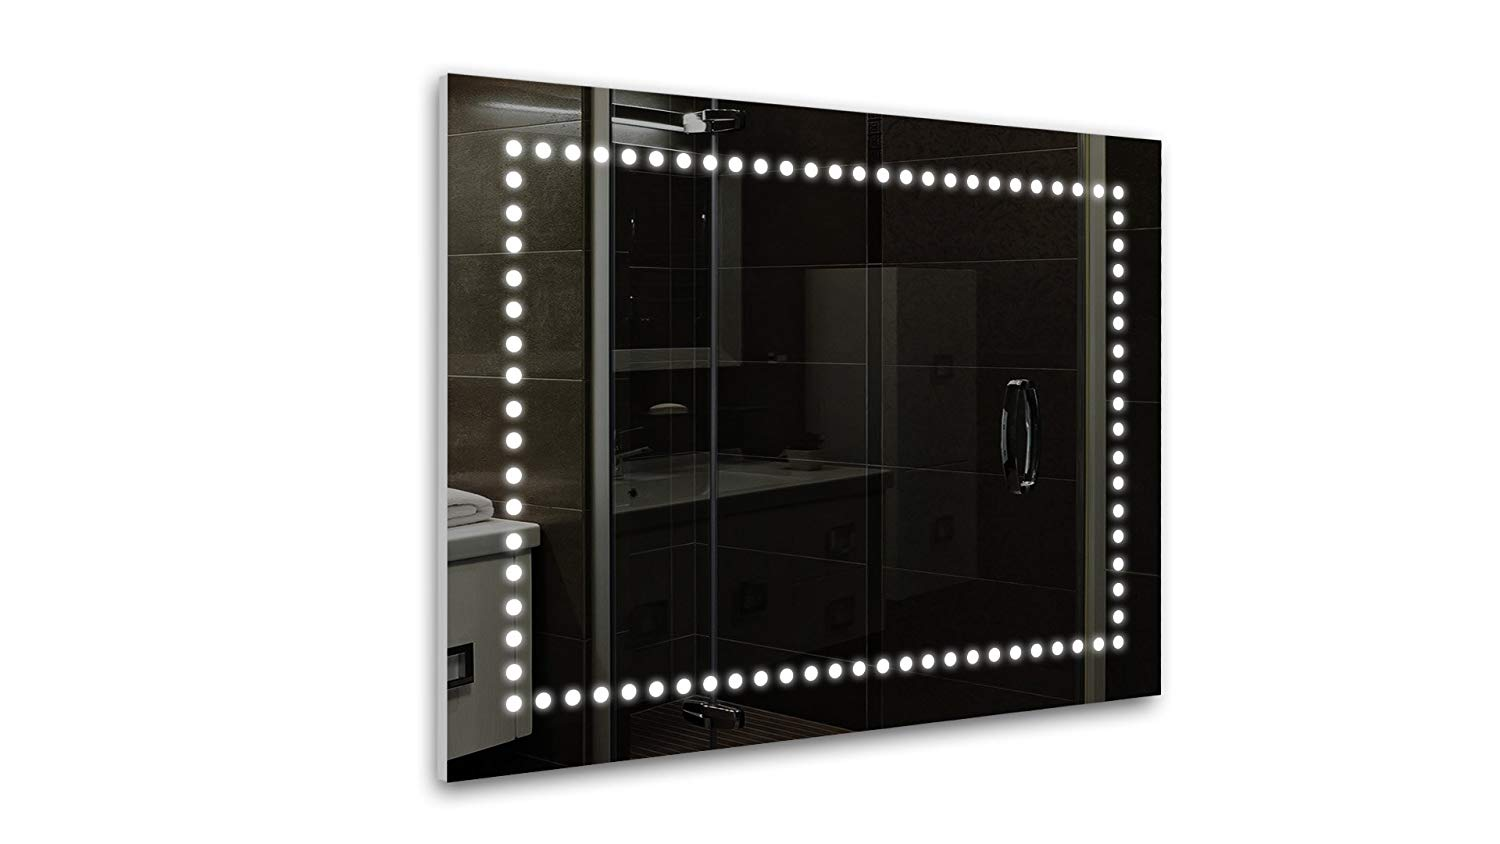 Tilebay LLC Ikot Led Lighted Rectangle Bathroom Mirror , Illuminated Wall Mounted Horizontal/Vertical Mirror 31x23 with Touch Button Switch